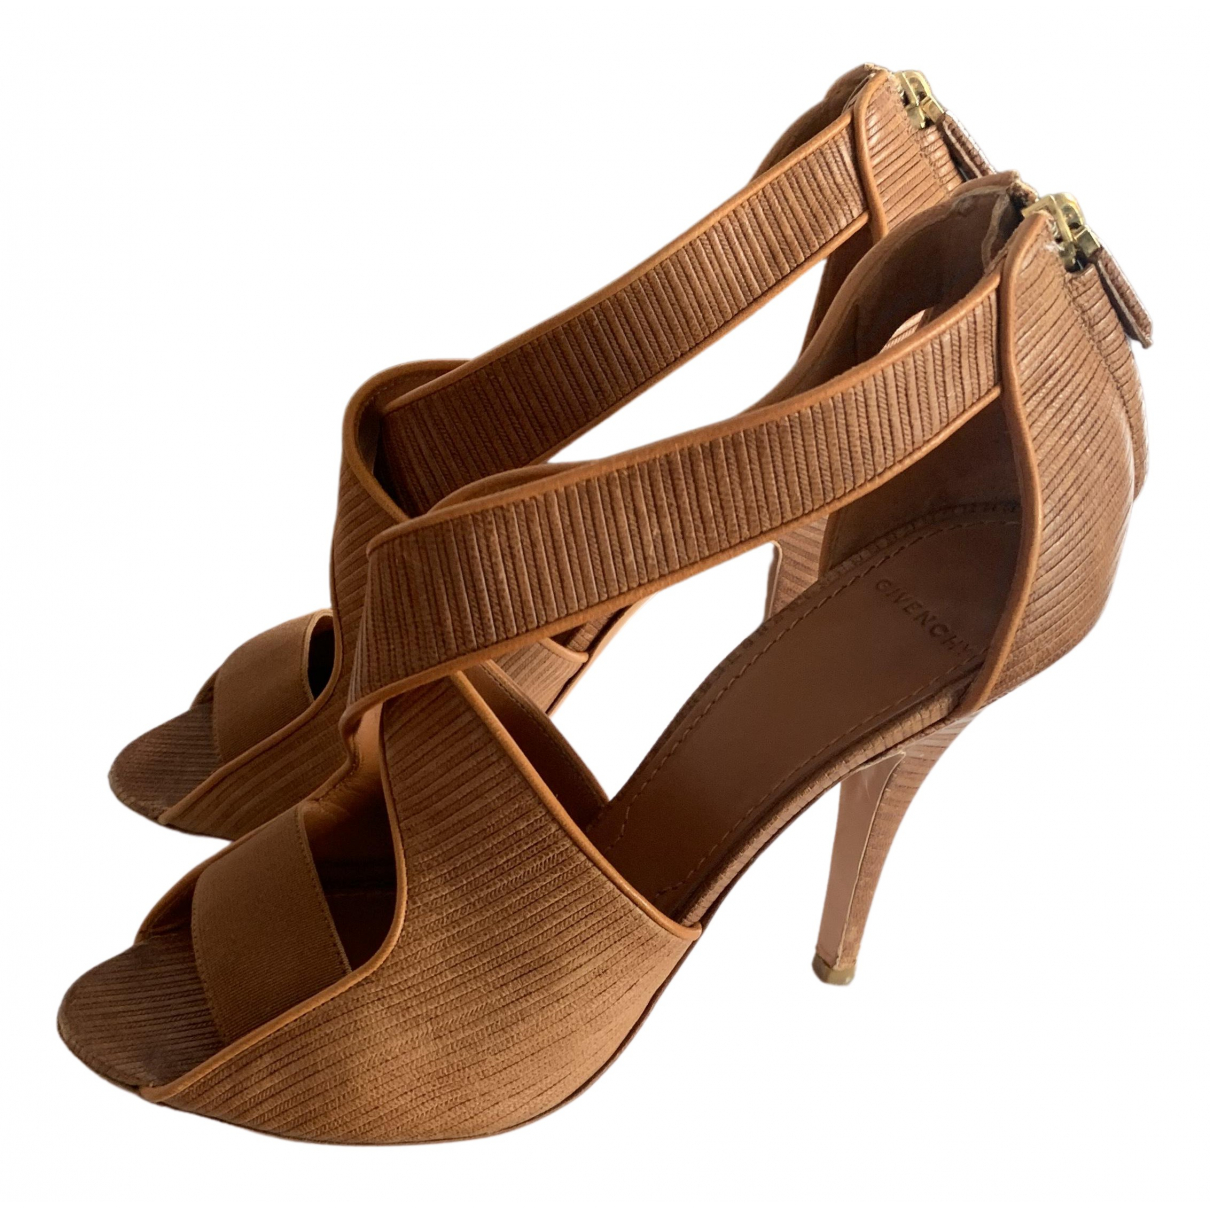 Givenchy N Beige Leather Sandals for Women 40 EU